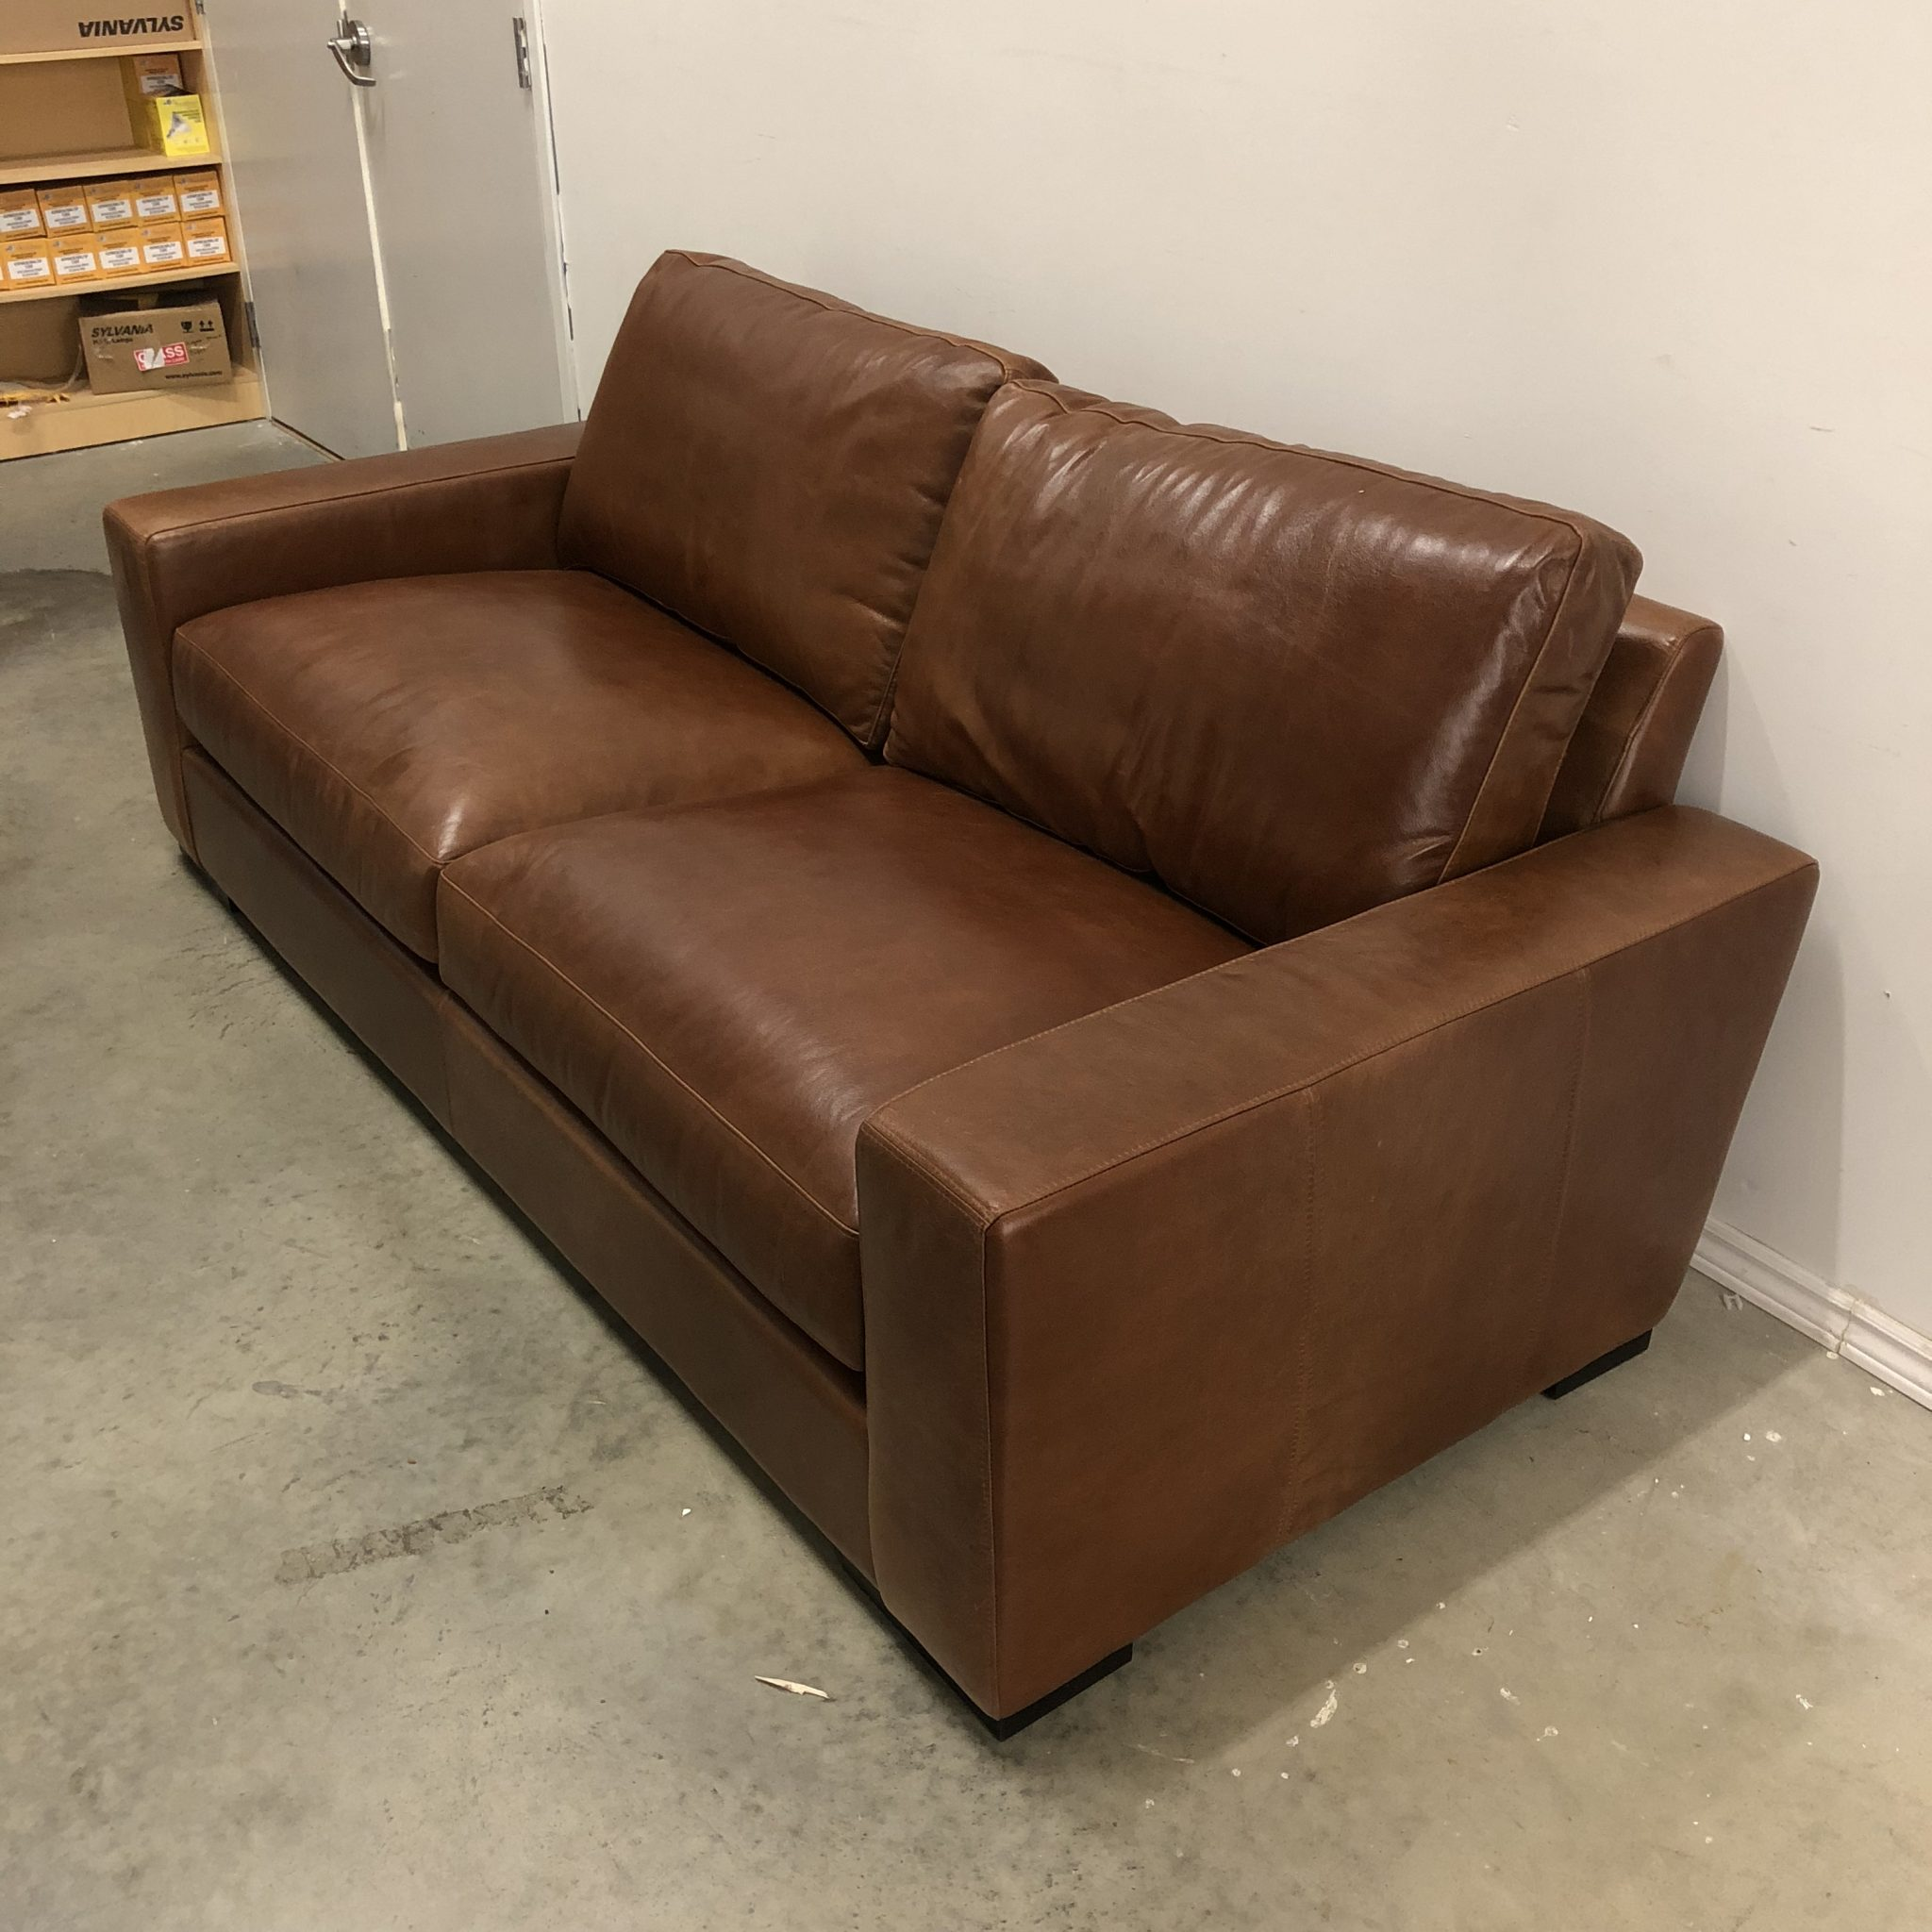 Enjoyable Maxwell Custom Leather Sofa Evergreenethics Interior Chair Design Evergreenethicsorg